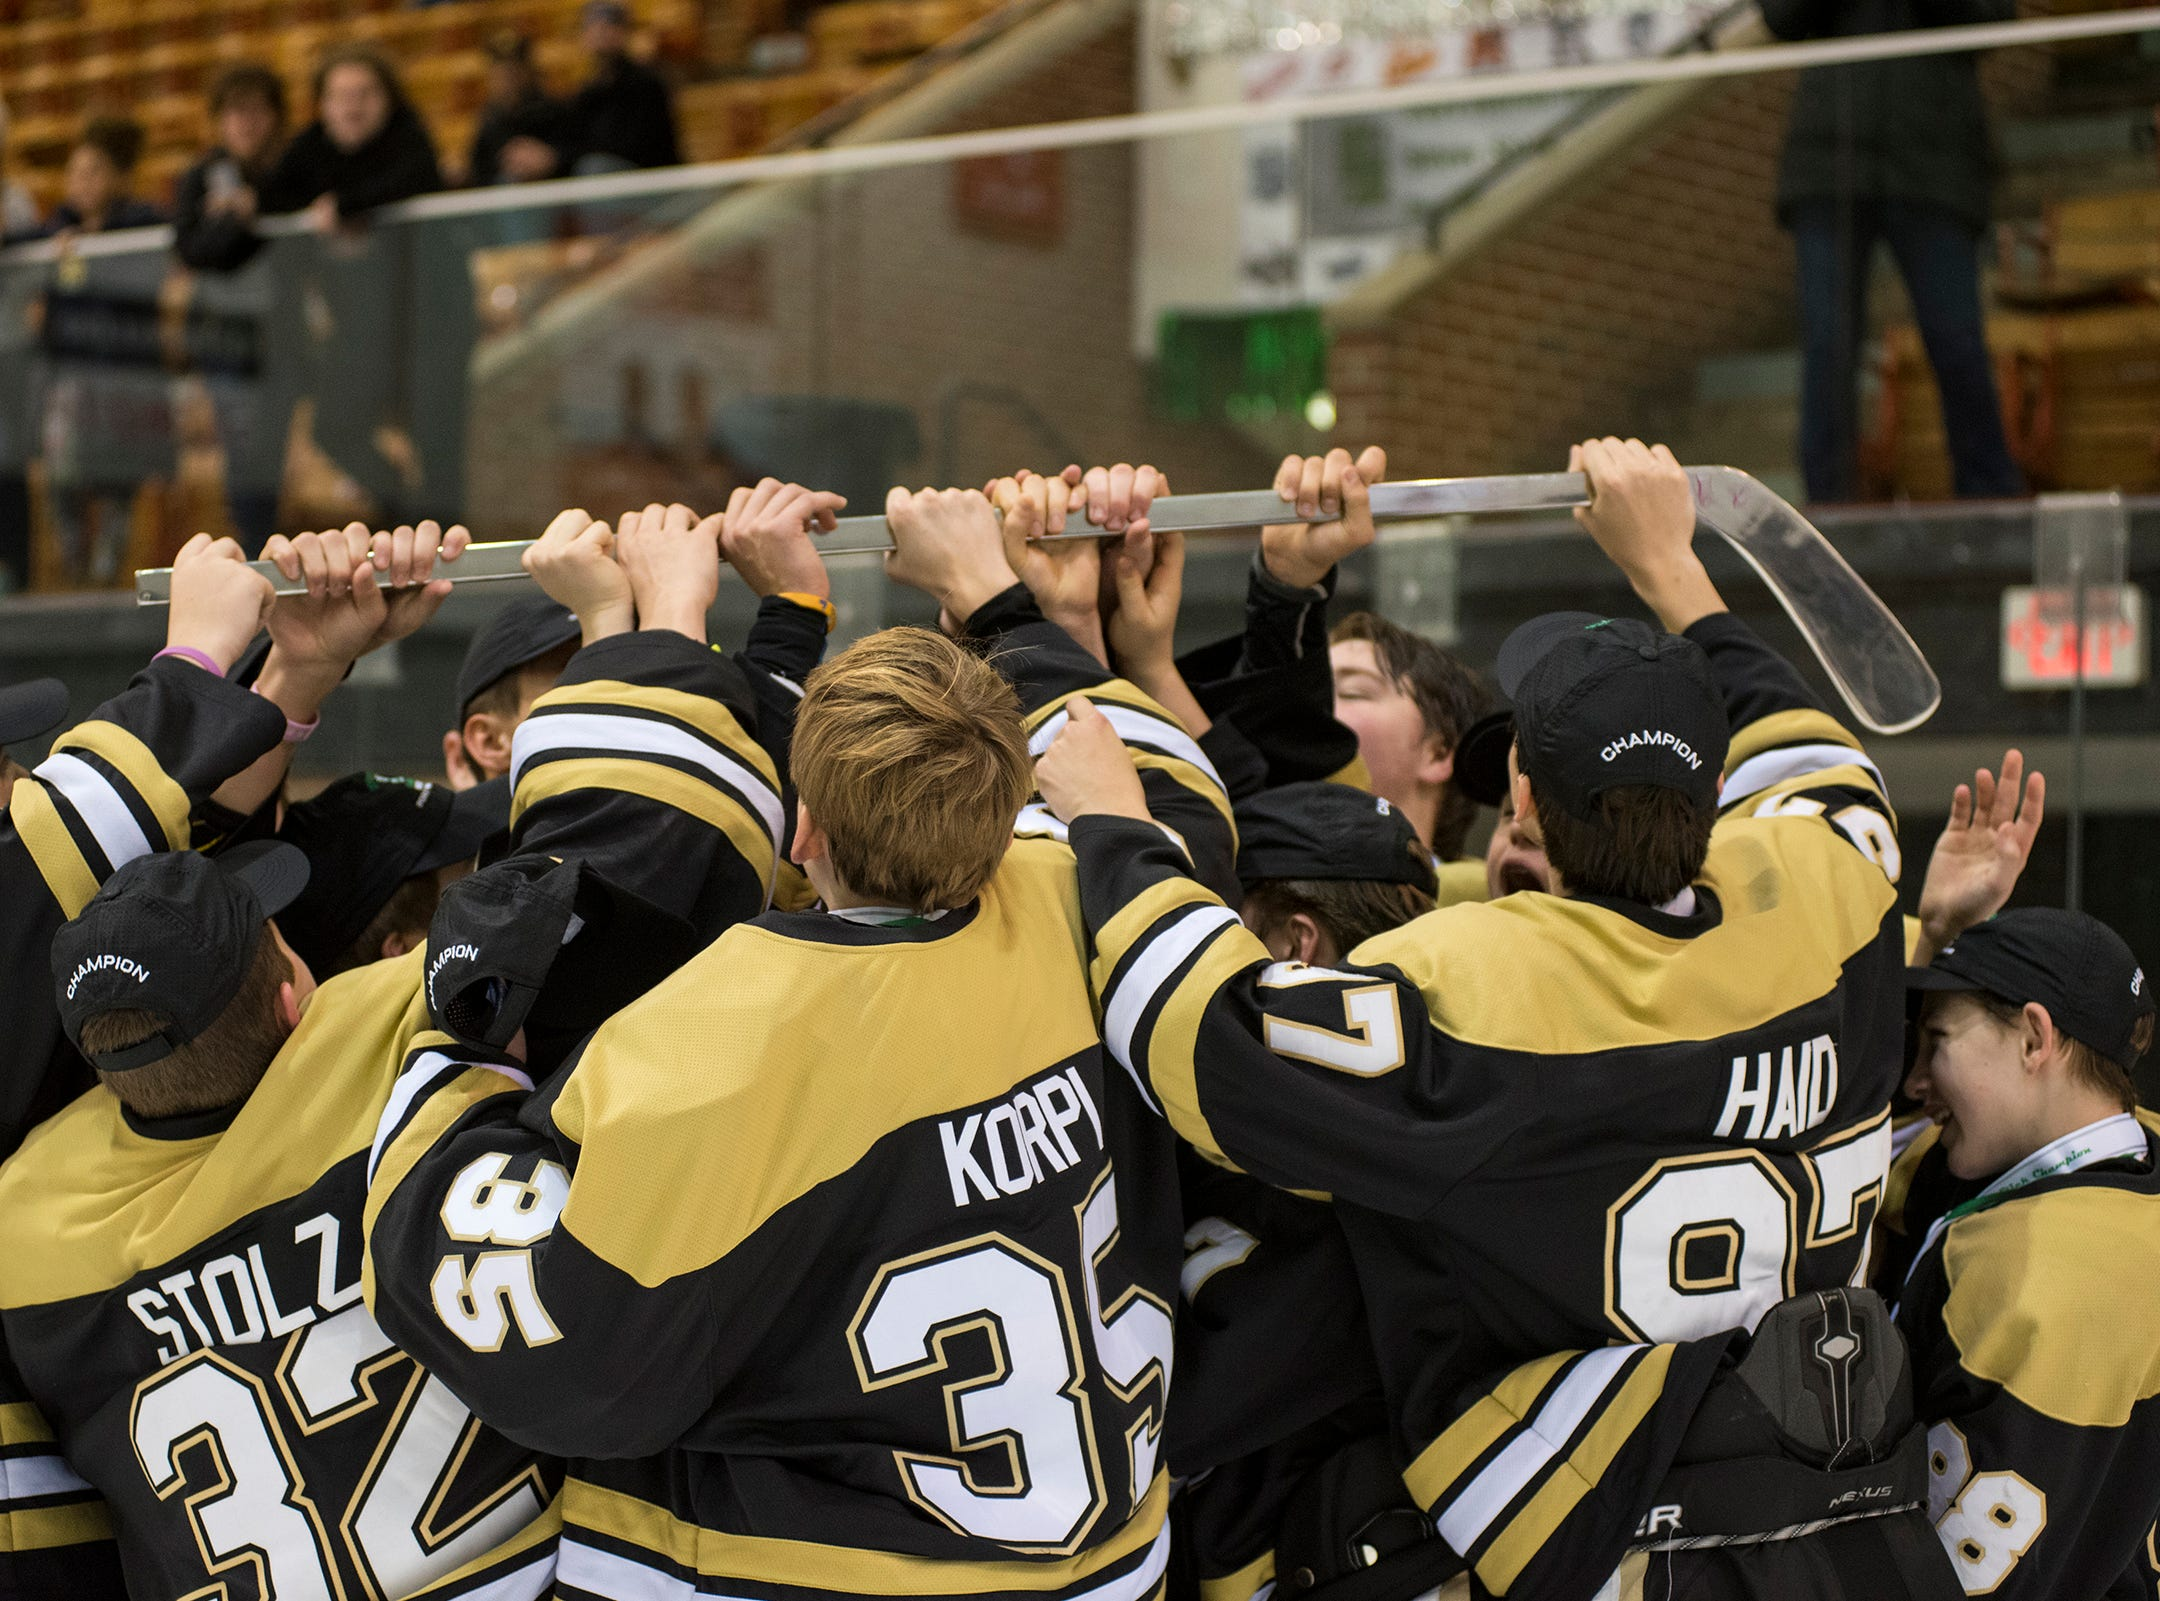 Players from Detroit Honeybaked lift the Silver Stick over their heads in celebration after defeating Buffalo Jr. Sabres 8-2 in  the Silver Stick Finals BAAA Championship match Sunday, Jan. 6, 2019 at McMorran Arena.